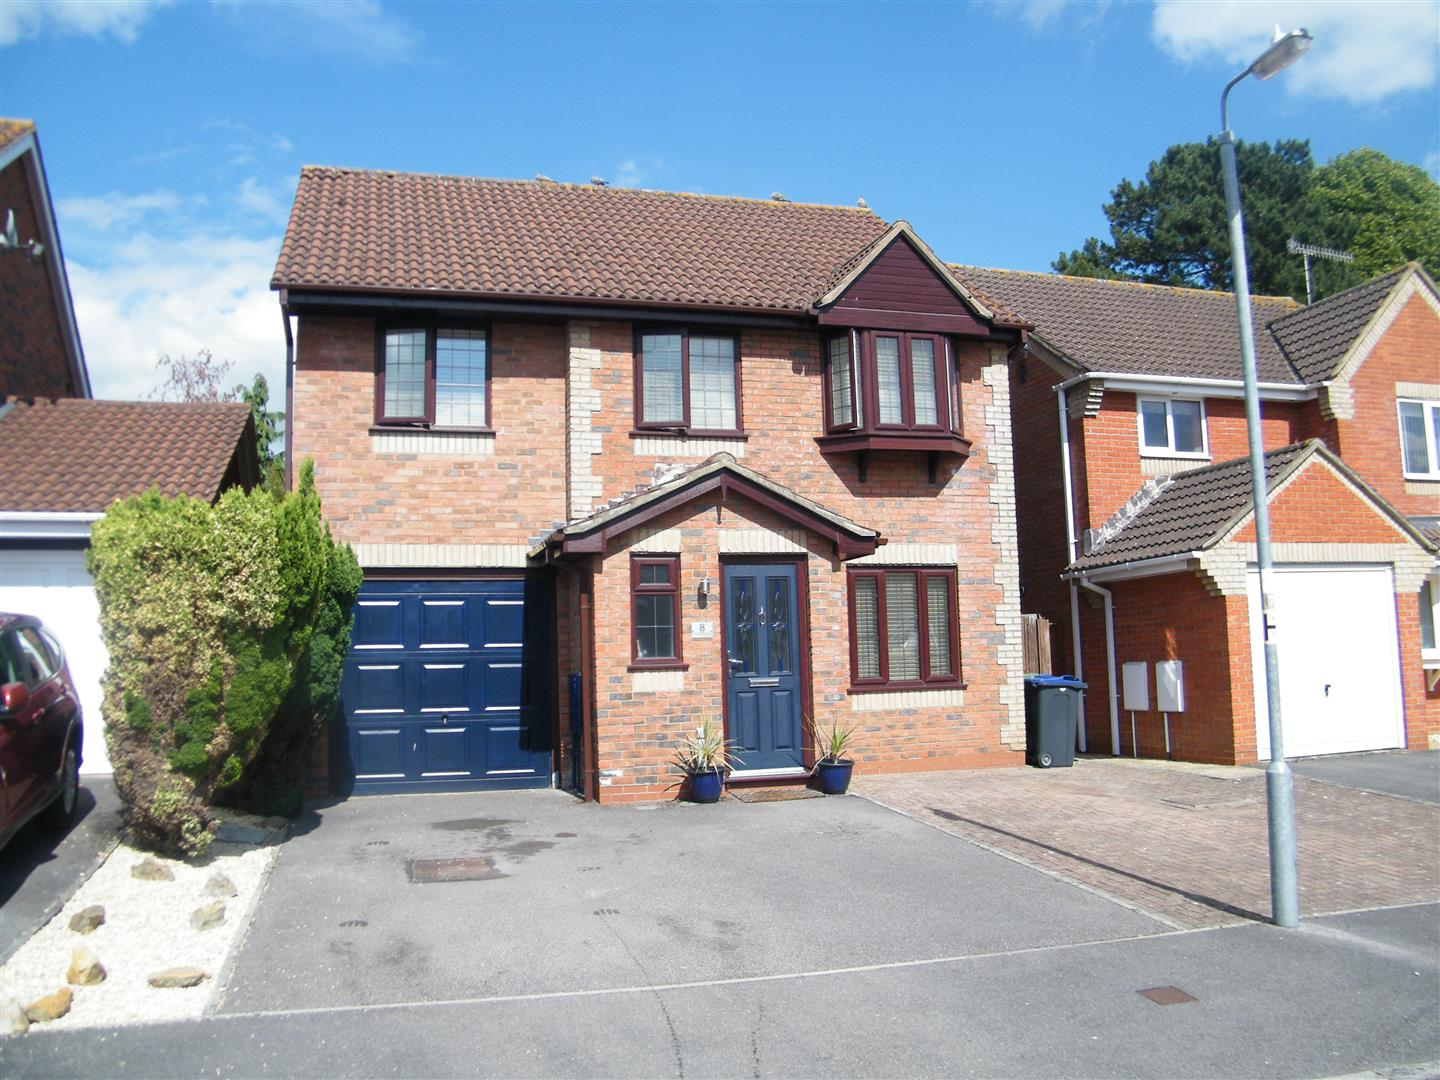 4 Bedrooms House for sale in Wintergreen, Calne